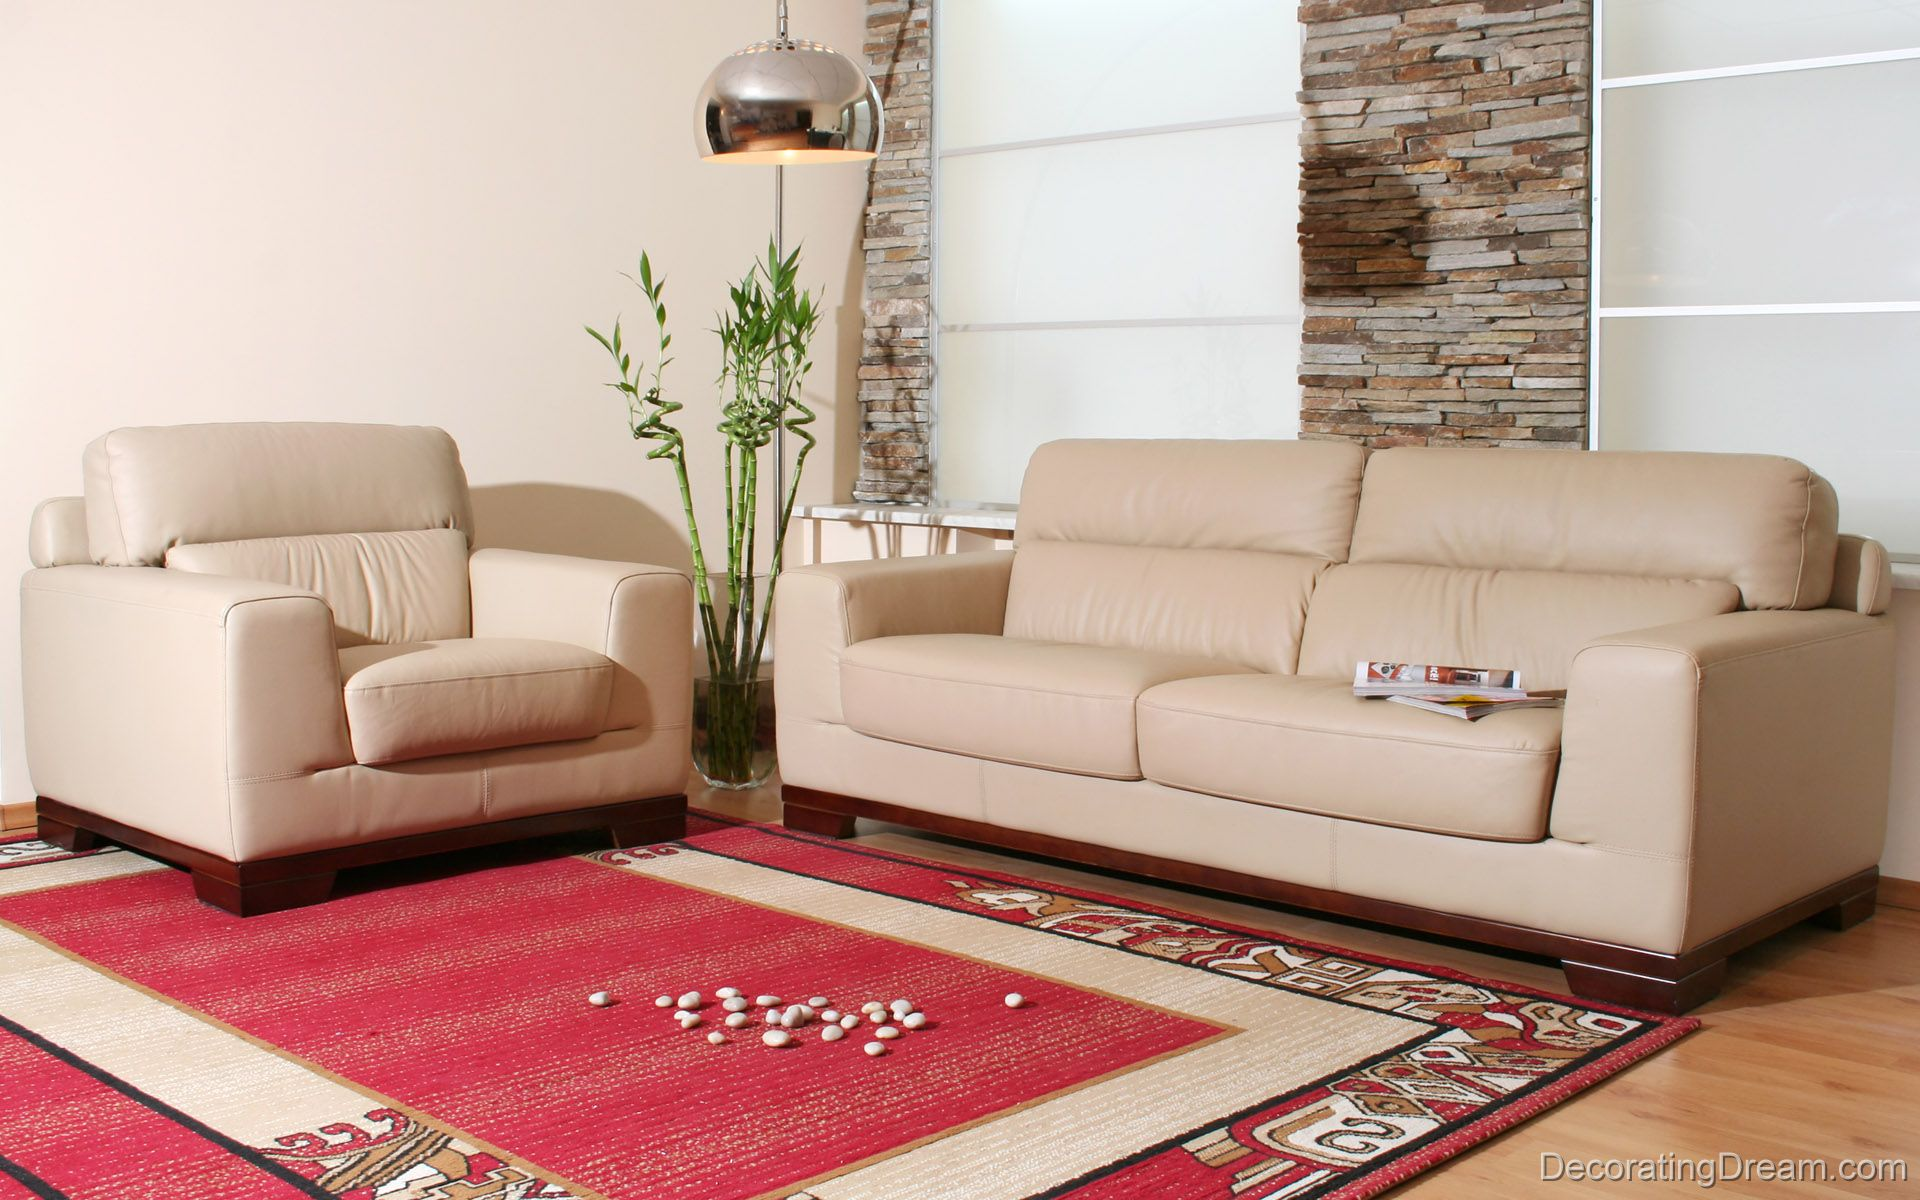 top 6 tips to choose the perfect living room couch - midcityeast